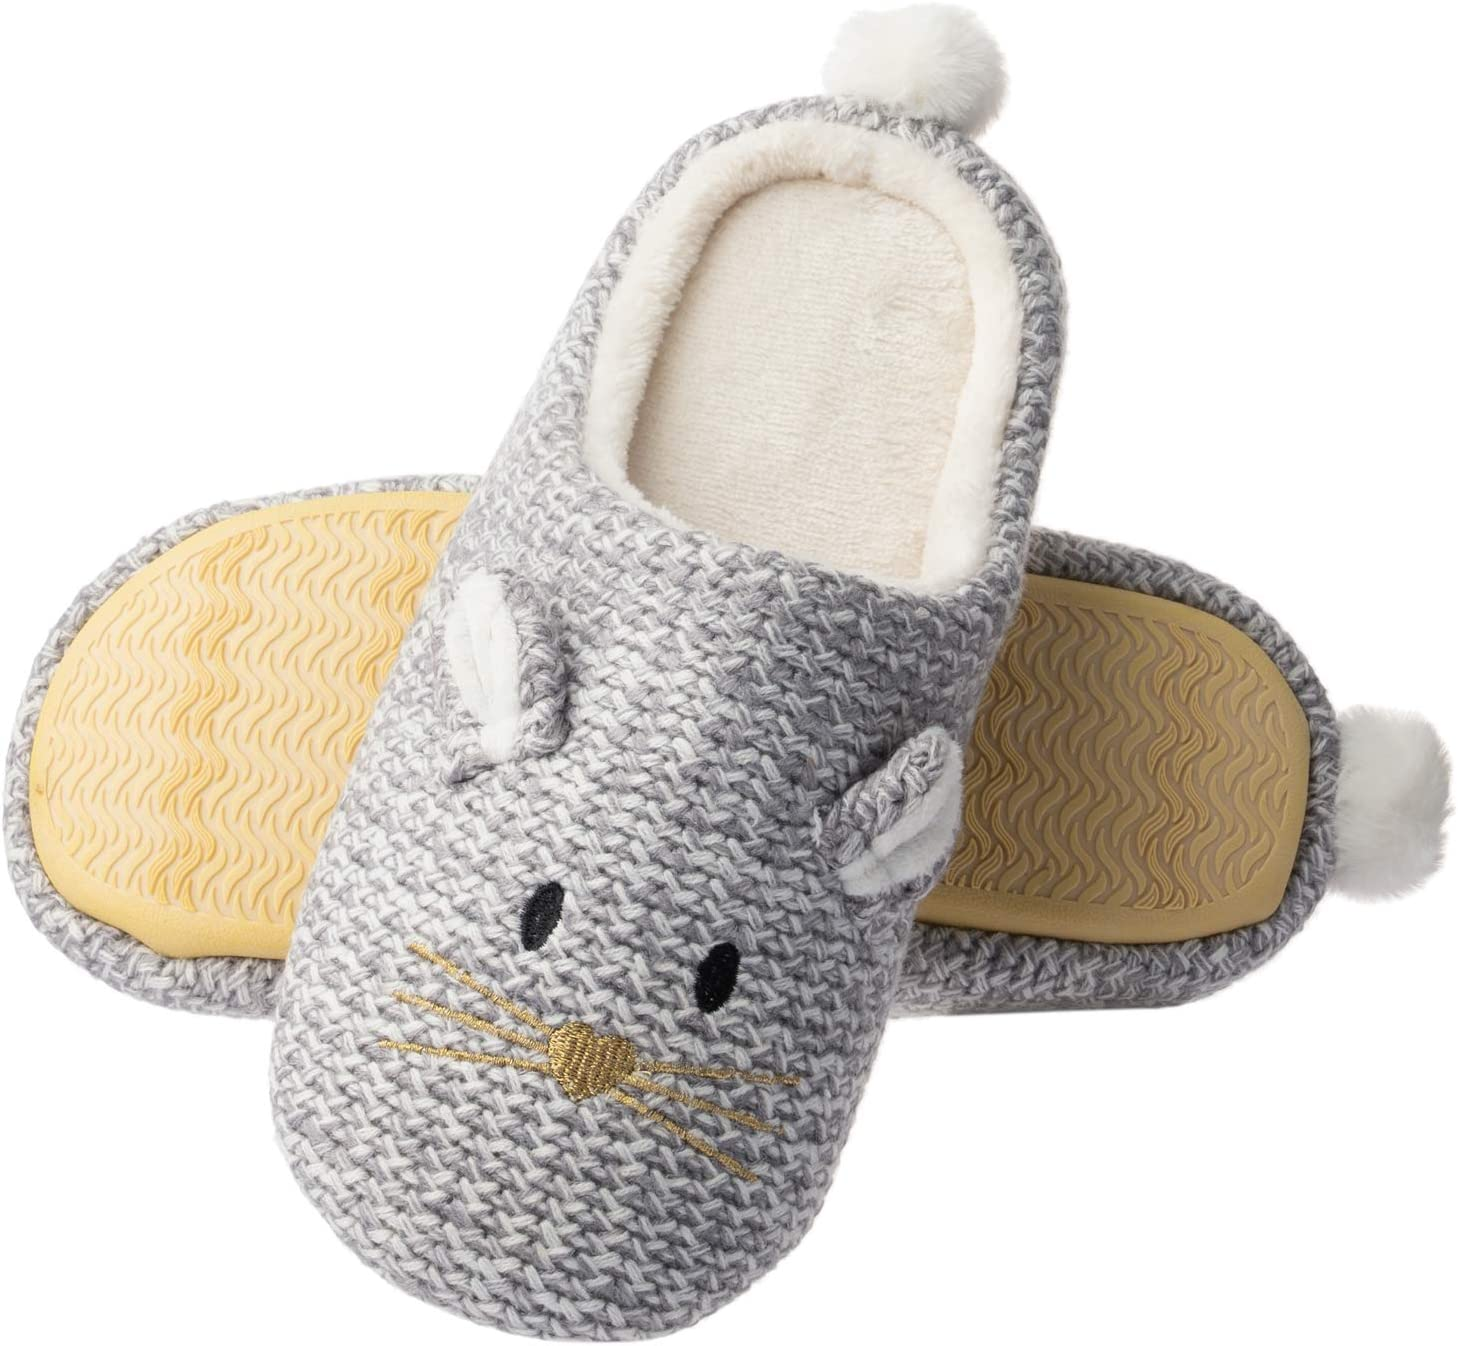 Women Winter Soft Plush Slippers Indoor Home Shoes Soft Sole House Shoes Slipper